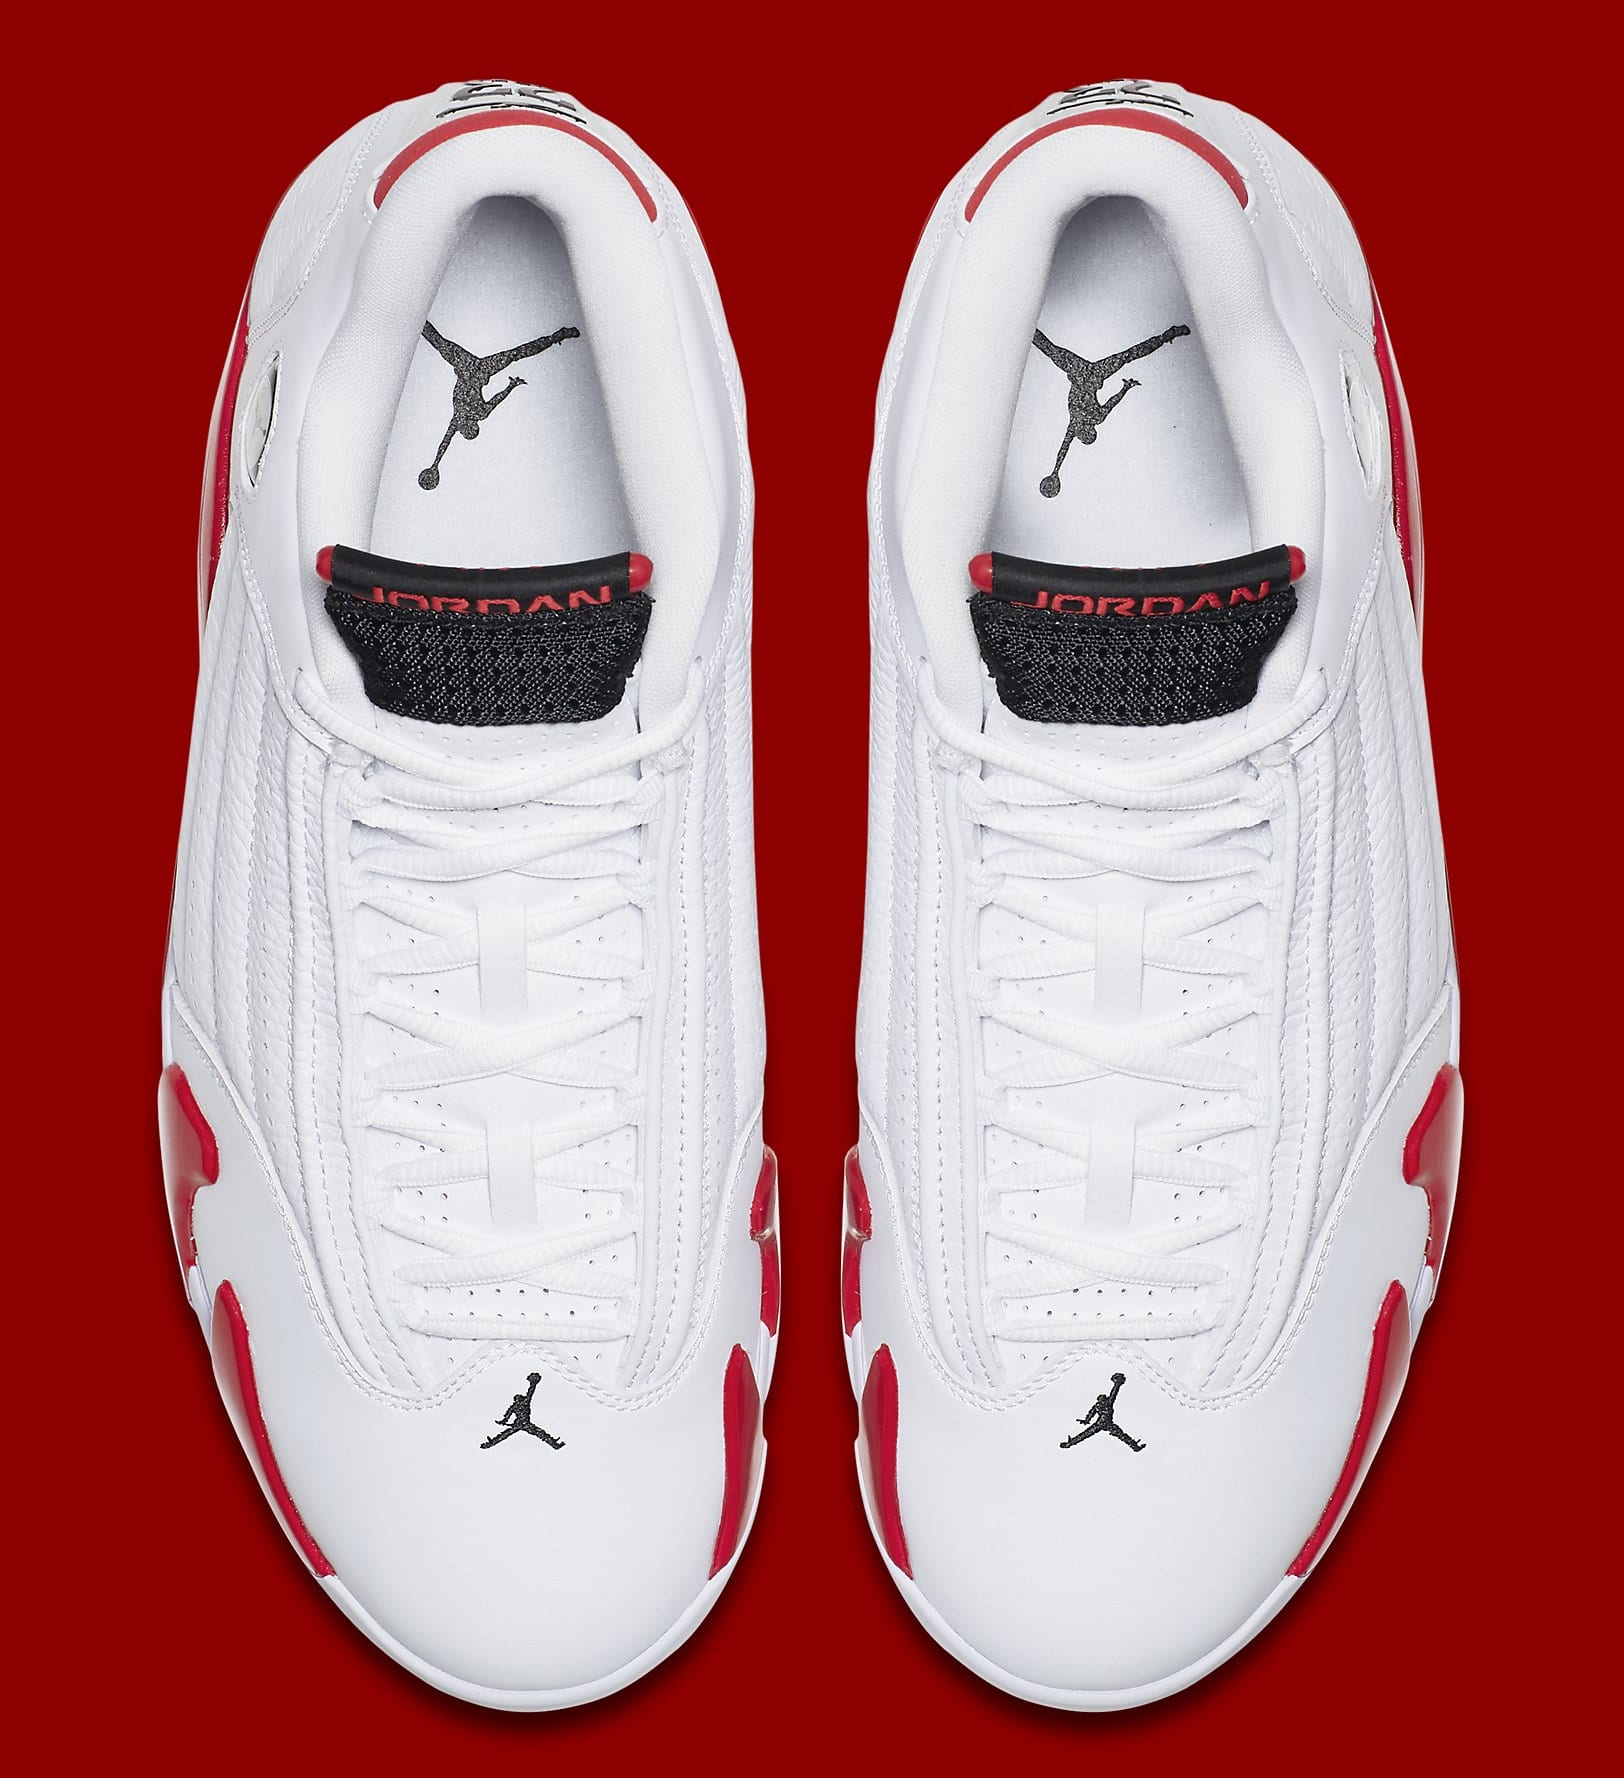 timeless design 47ce6 889cd Image via Nike Air Jordan 14 Retro  Candy Cane 2019  487471-100 Top